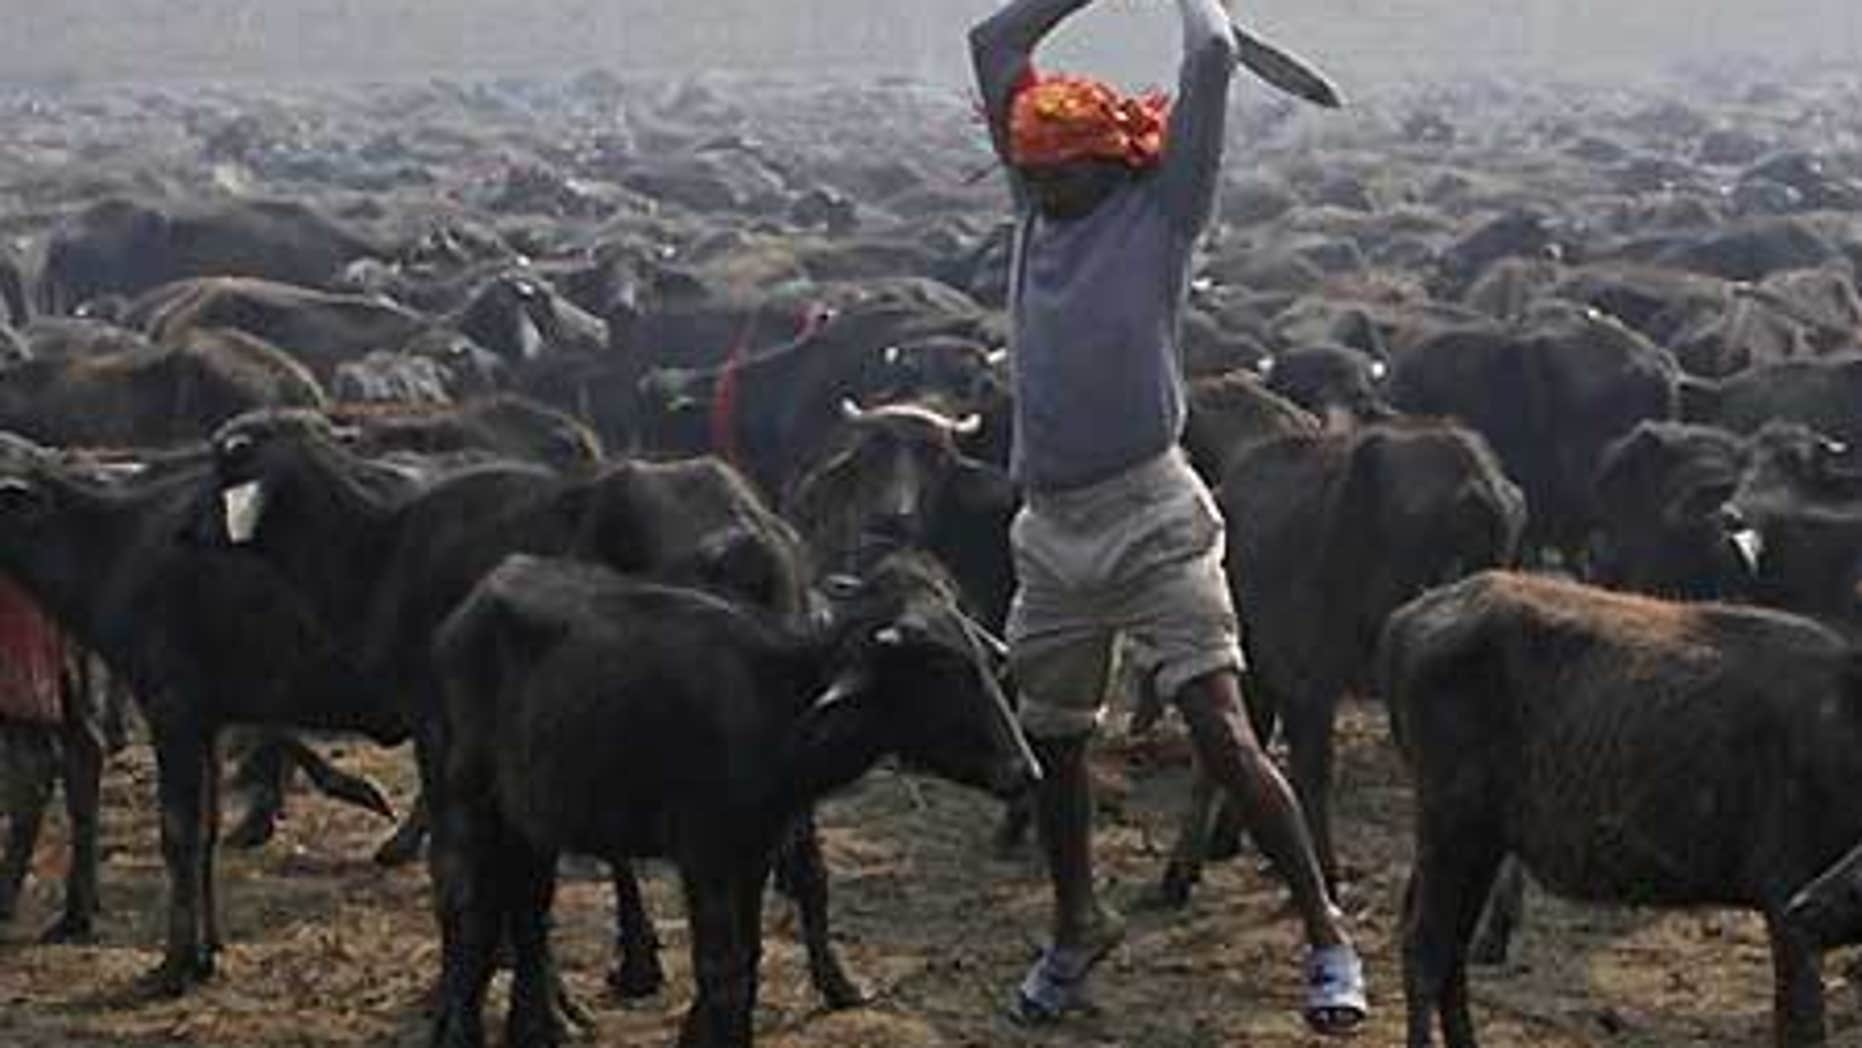 Nov. 24: A butcher prepares to slaughter a buffalo with his knife during a mass sacrifice ceremony at Gadhimai temple in Bariyapur, Nepal.